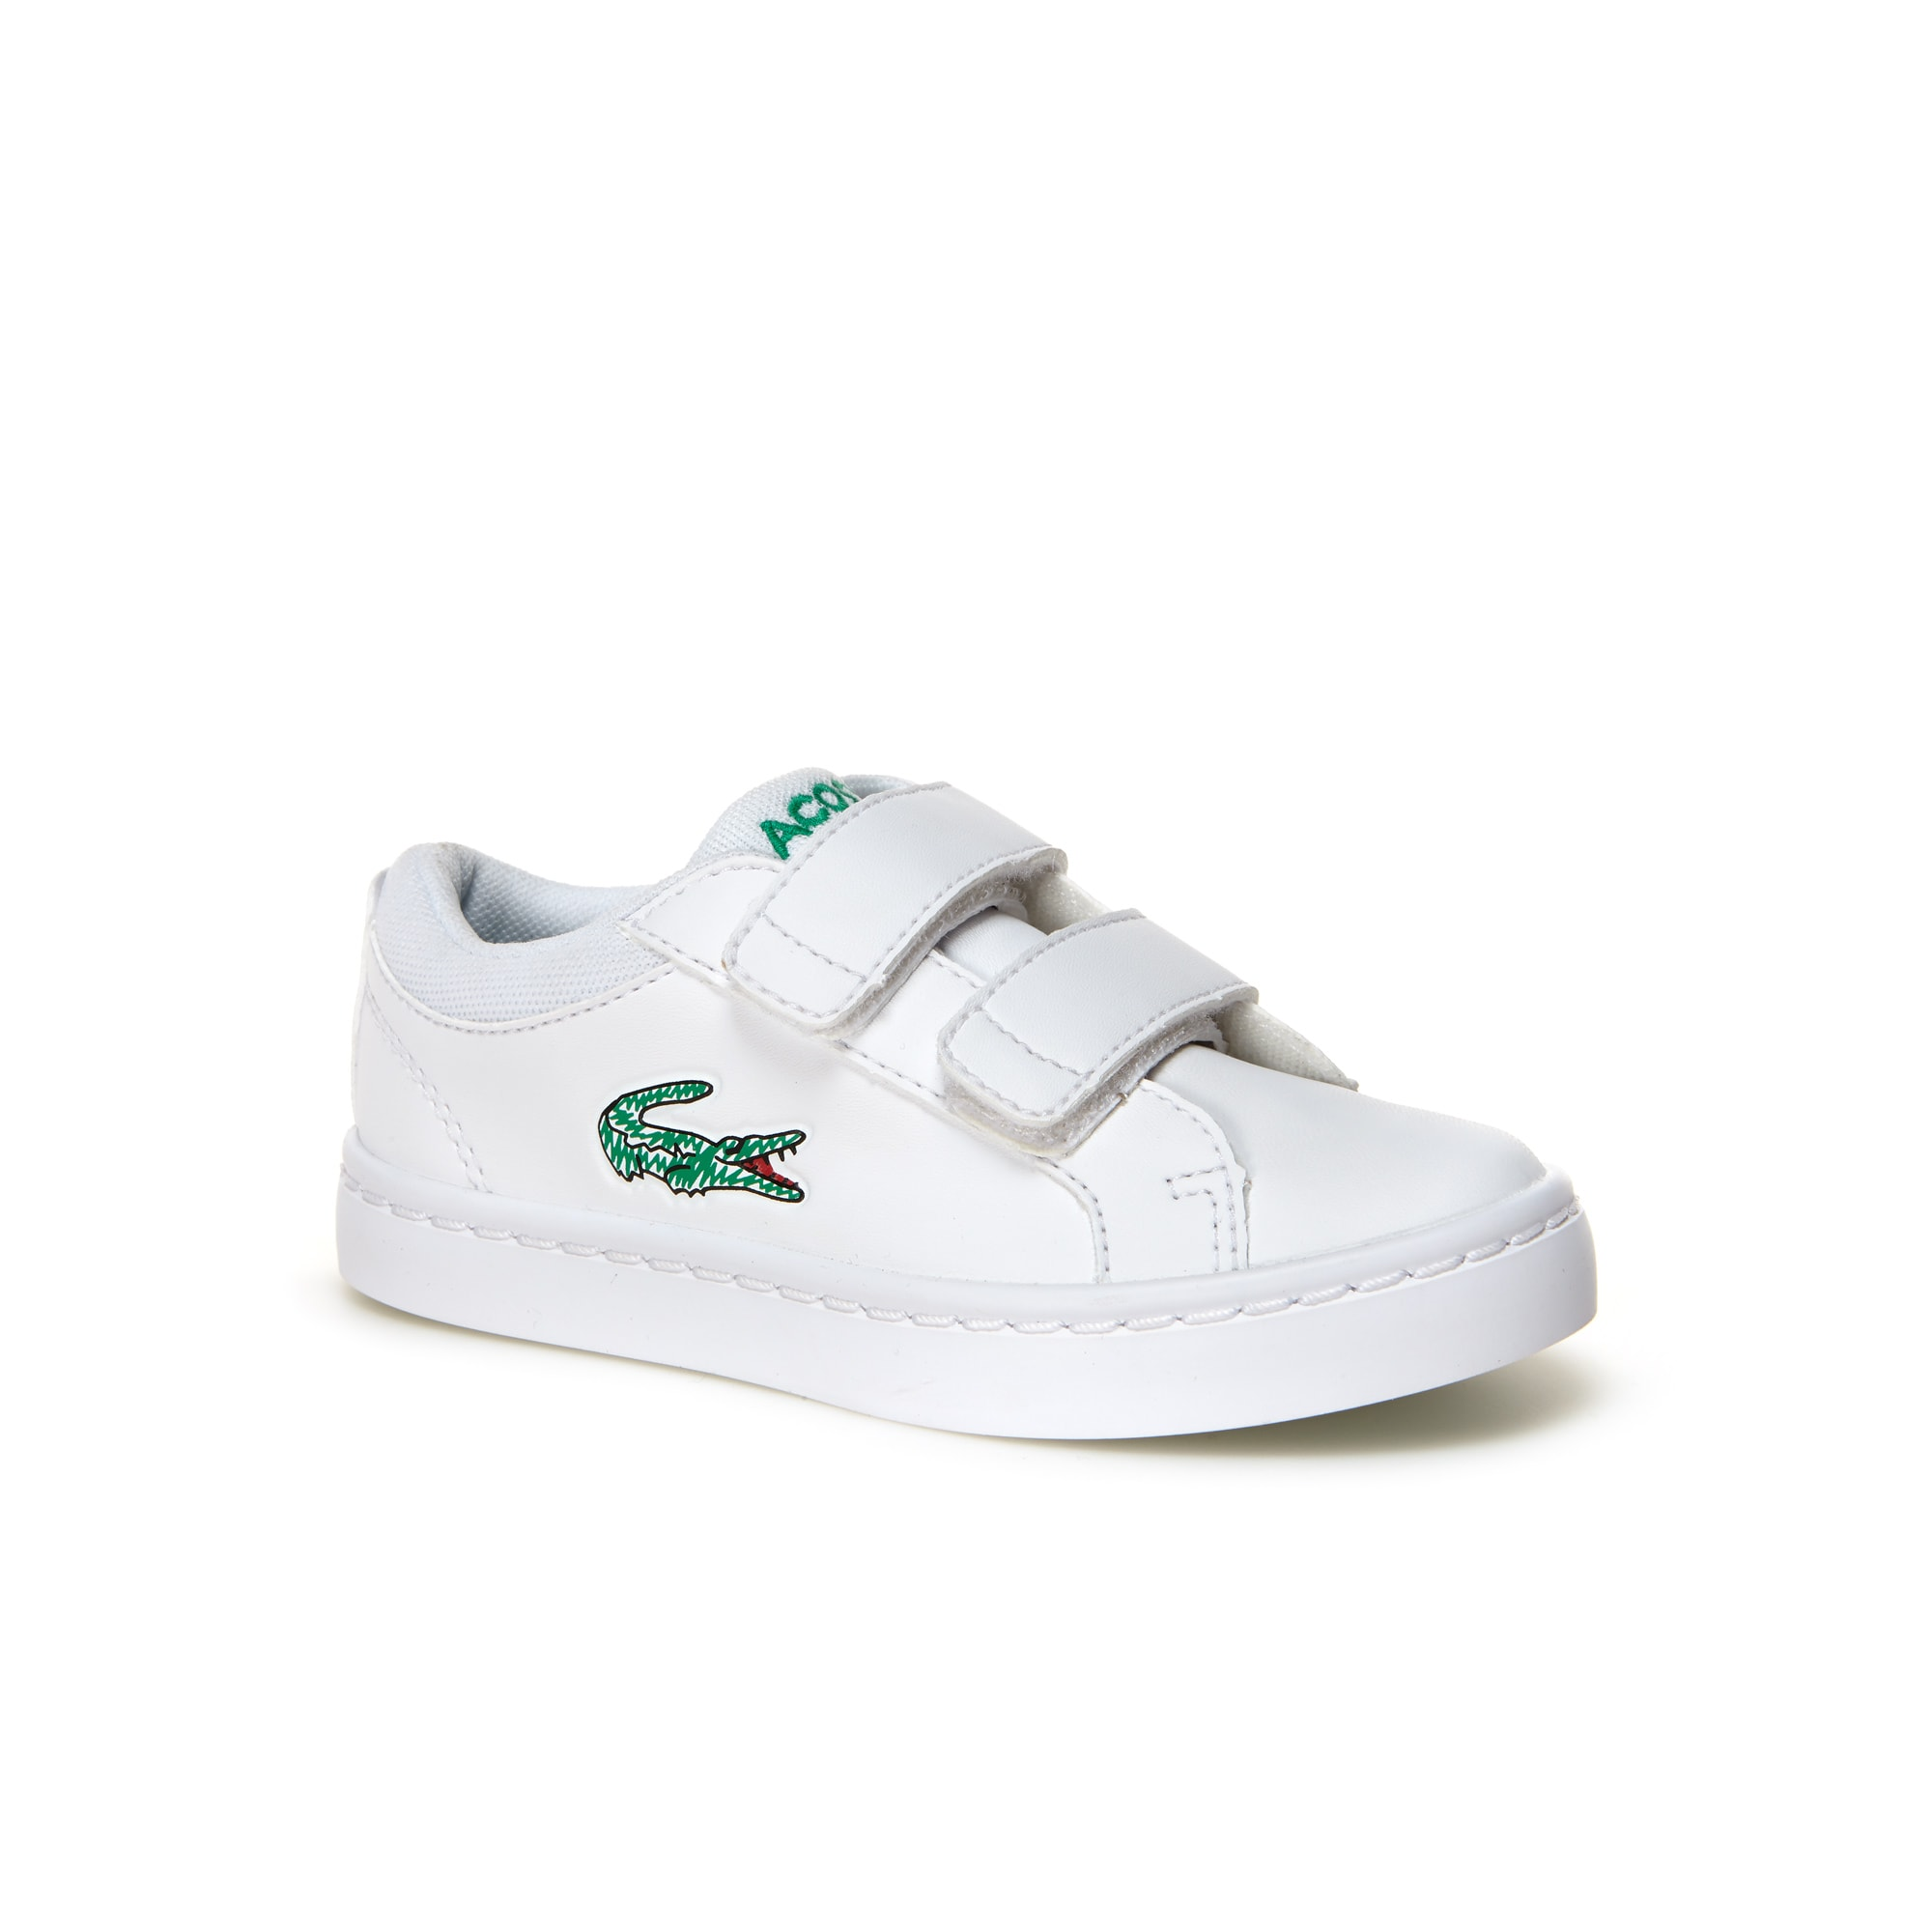 Straightset Lace kindersneakers leather-look